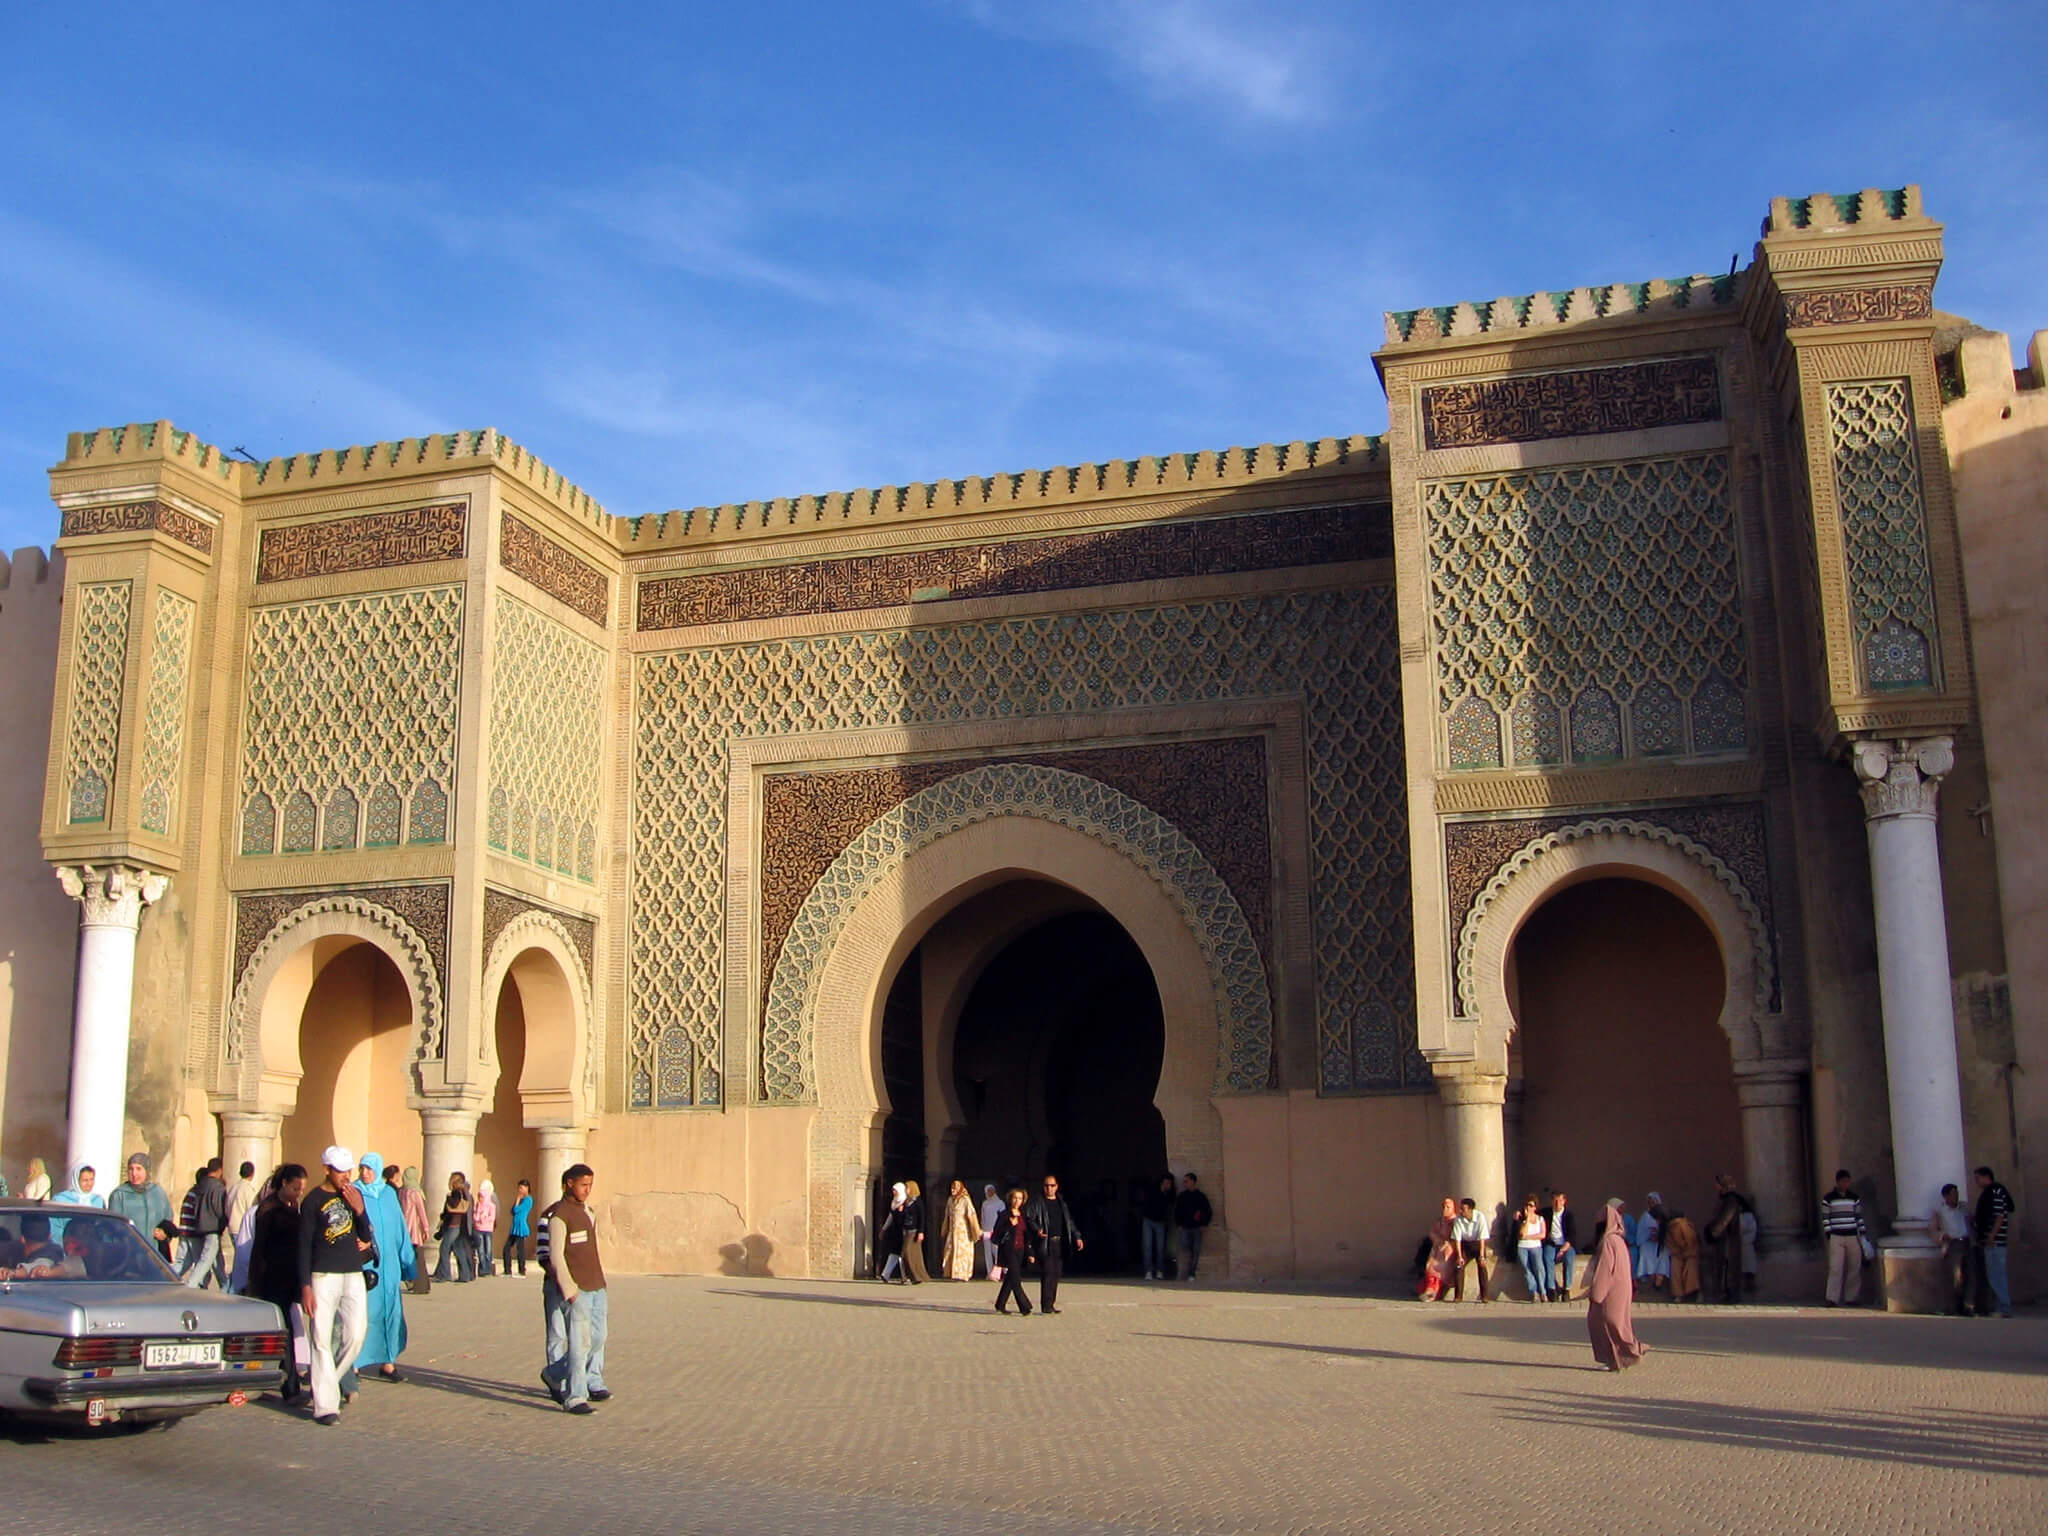 Sahara Desert Tour - What to See and Do in Meknes, one of Morocco's Grandest Ancient Cities - Bab el Mansour